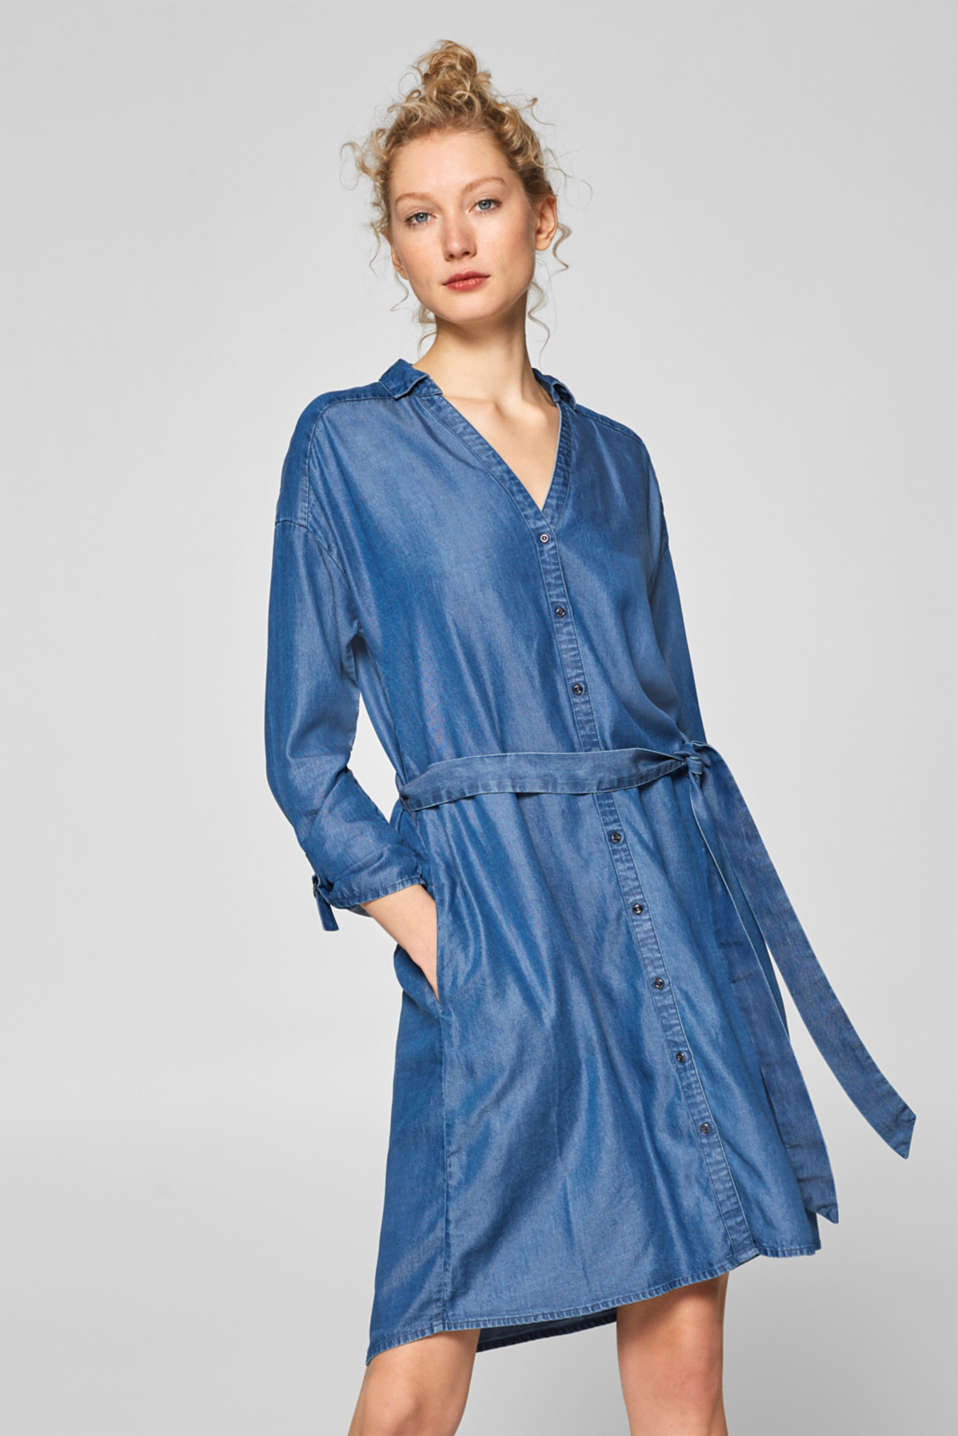 edc - Denim dress in lyocell in a shirt blouse style